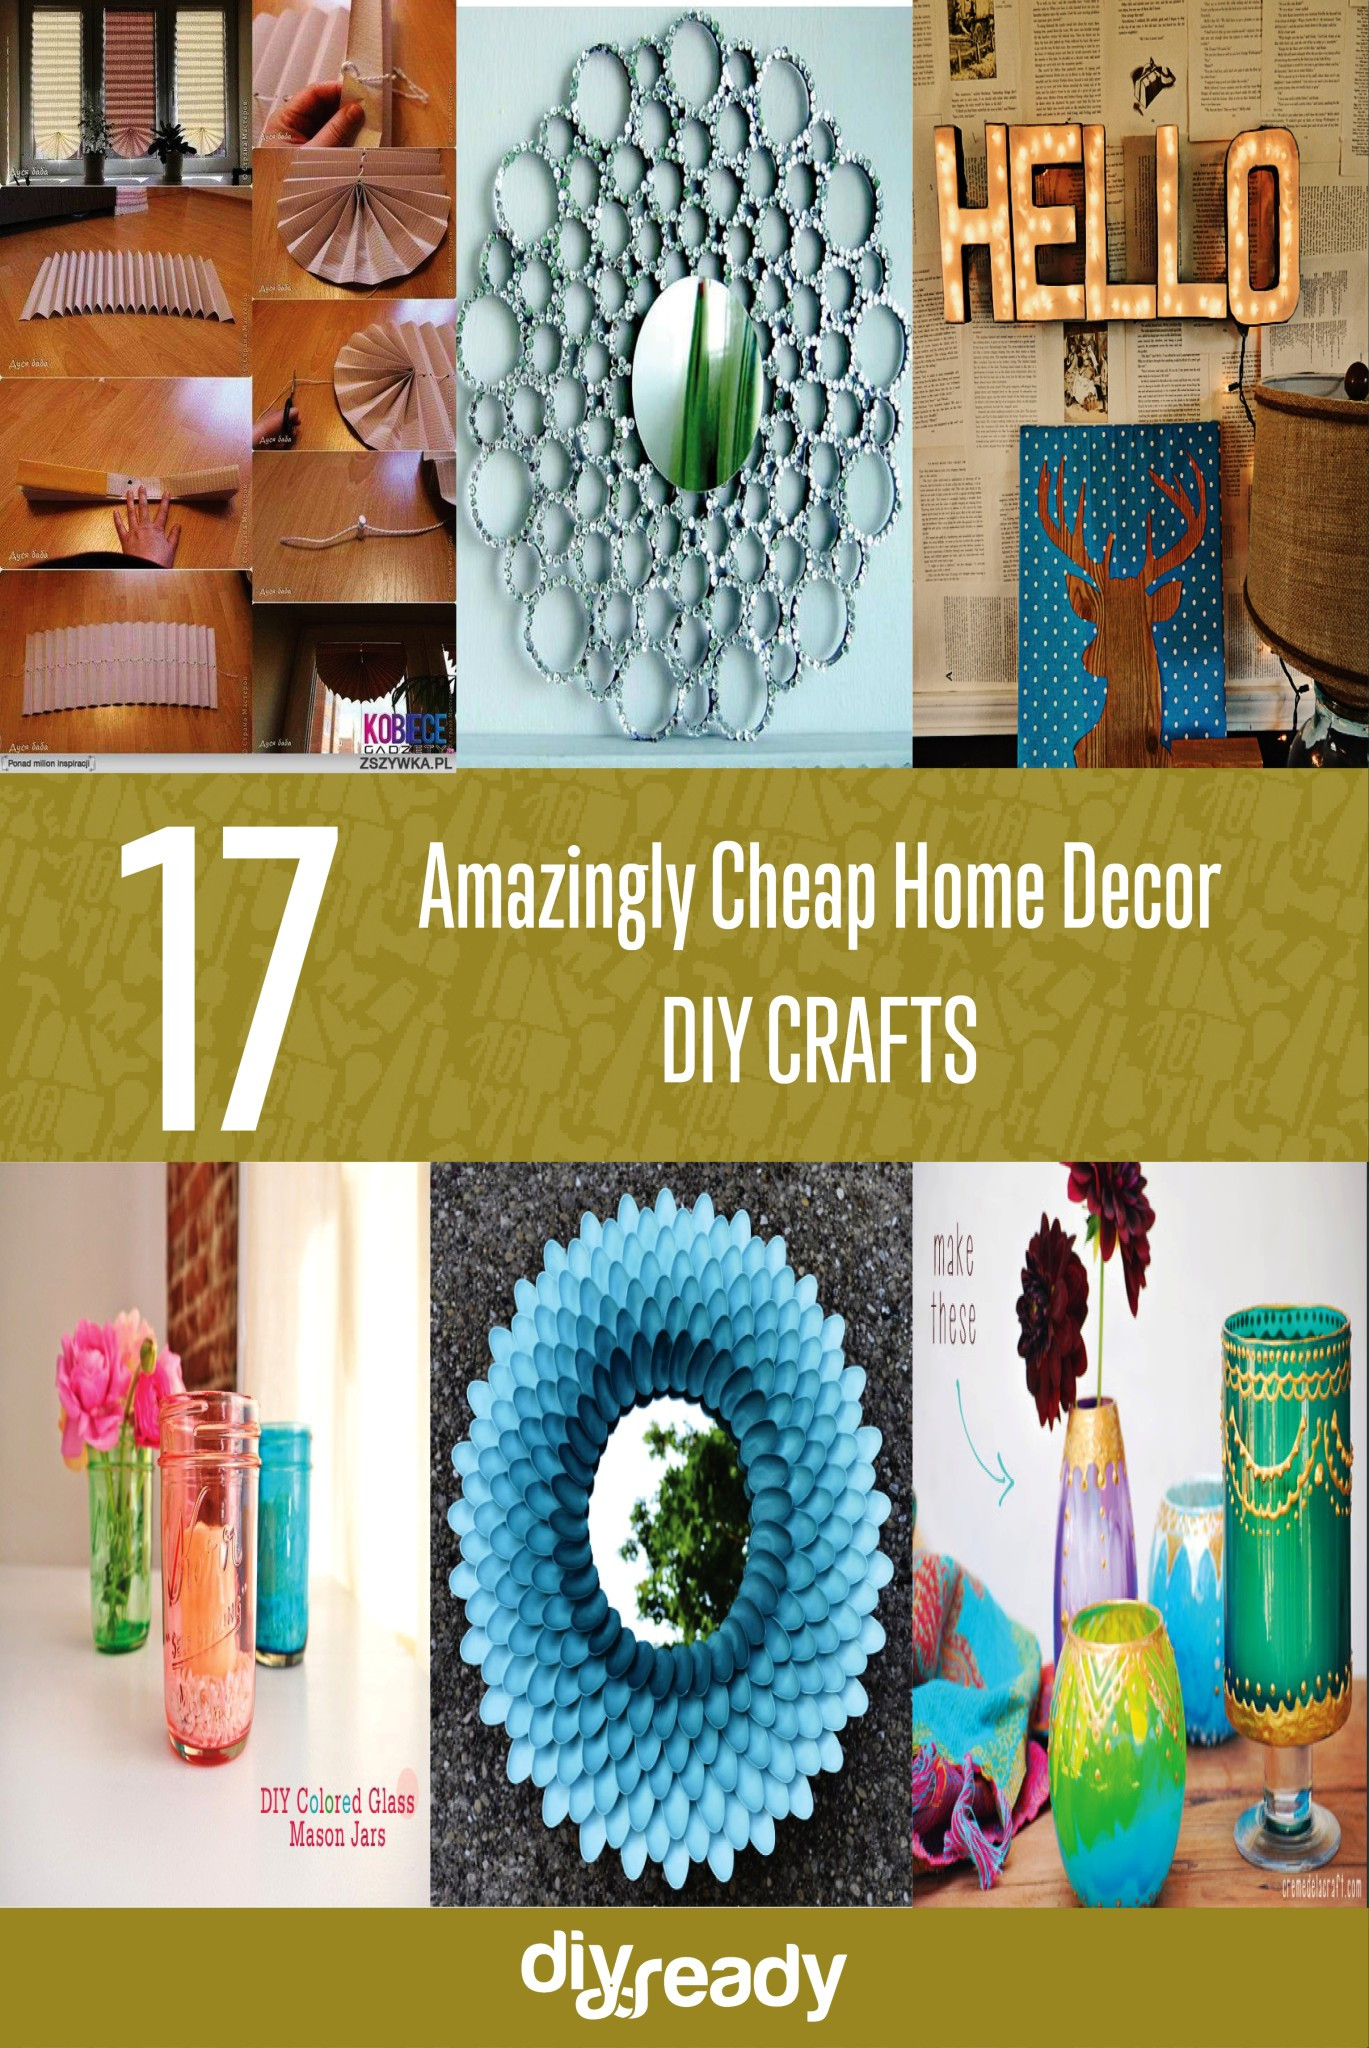 Best ideas about Cheap DIY Room Decor . Save or Pin Amazingly Cheap Home Decor Now.